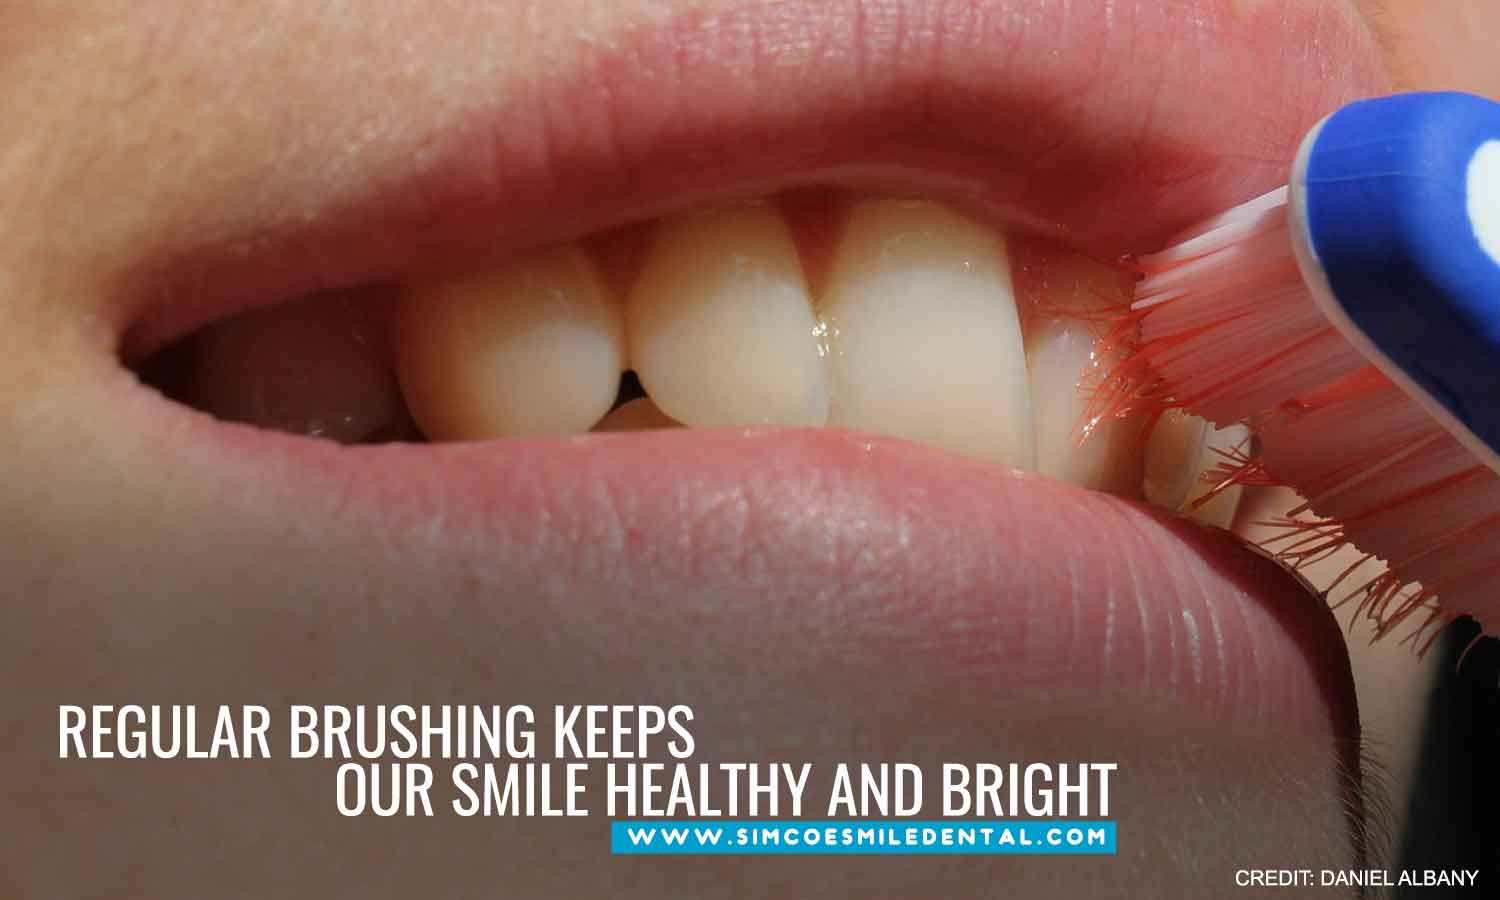 Regular-brushing-keeps-our-smile-healthy-and-bright How to Help Your Toothbrush Take Care of Your Teeth